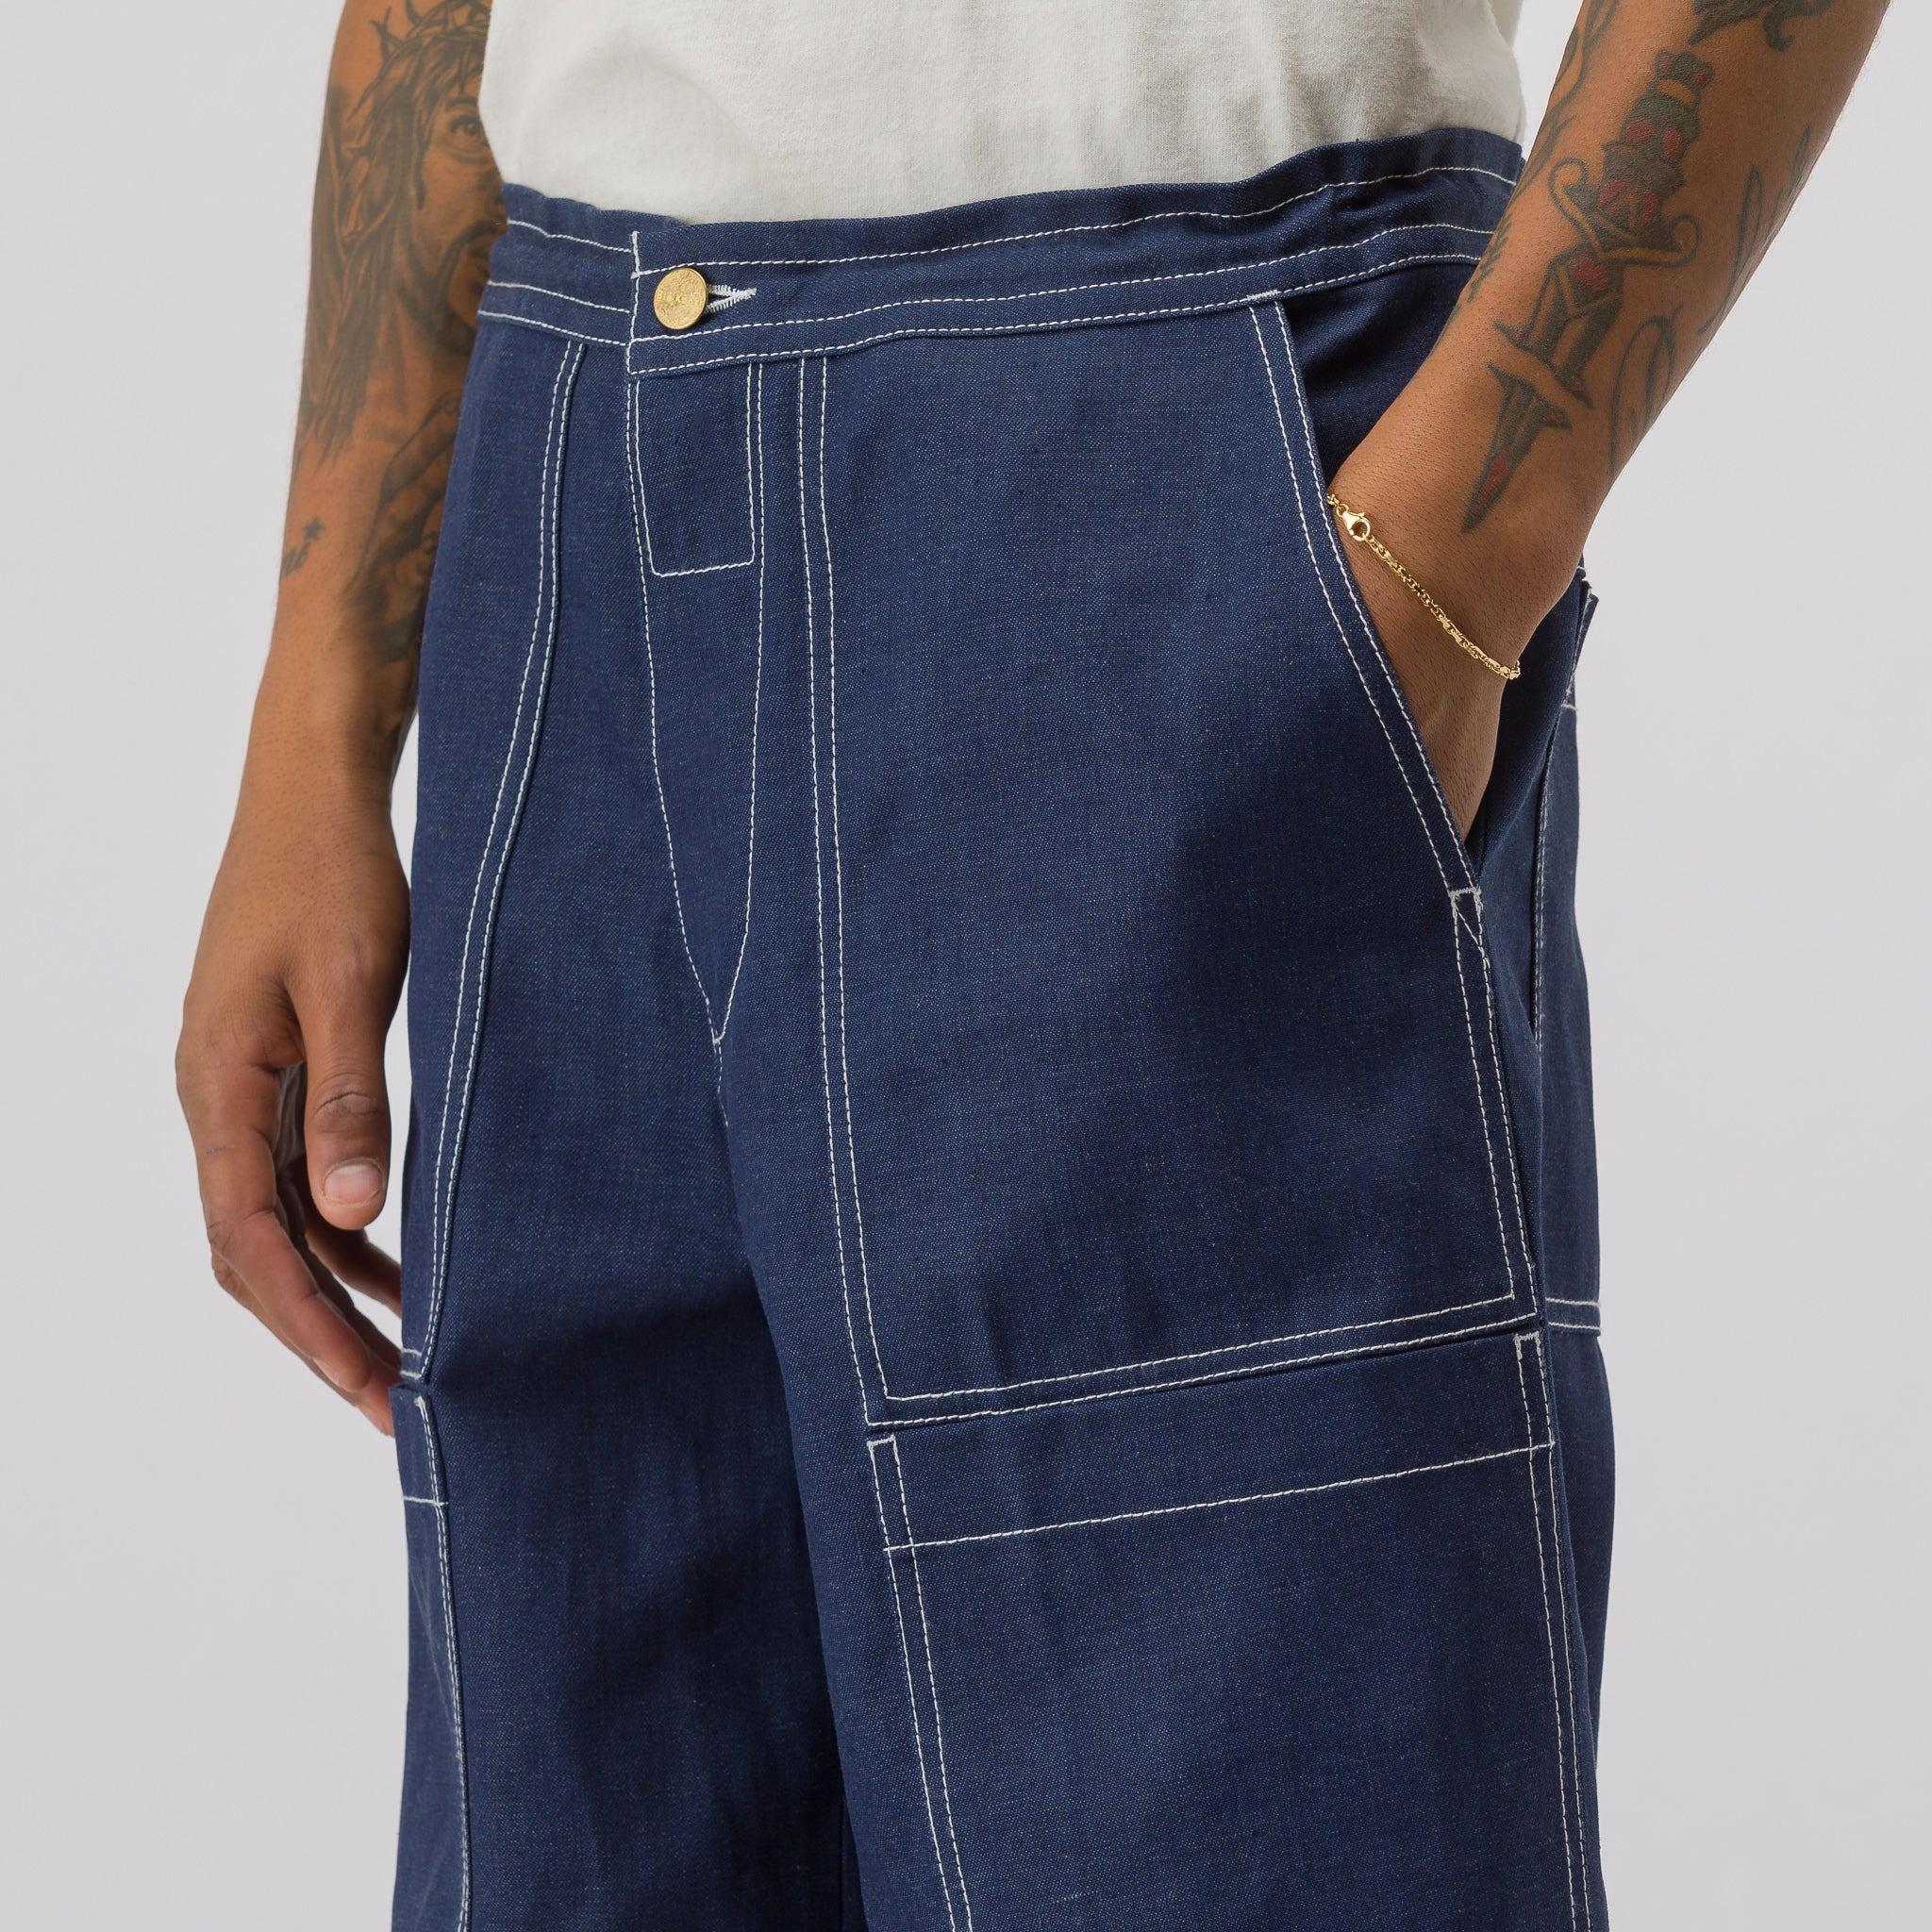 Hill D Pant in Indigo